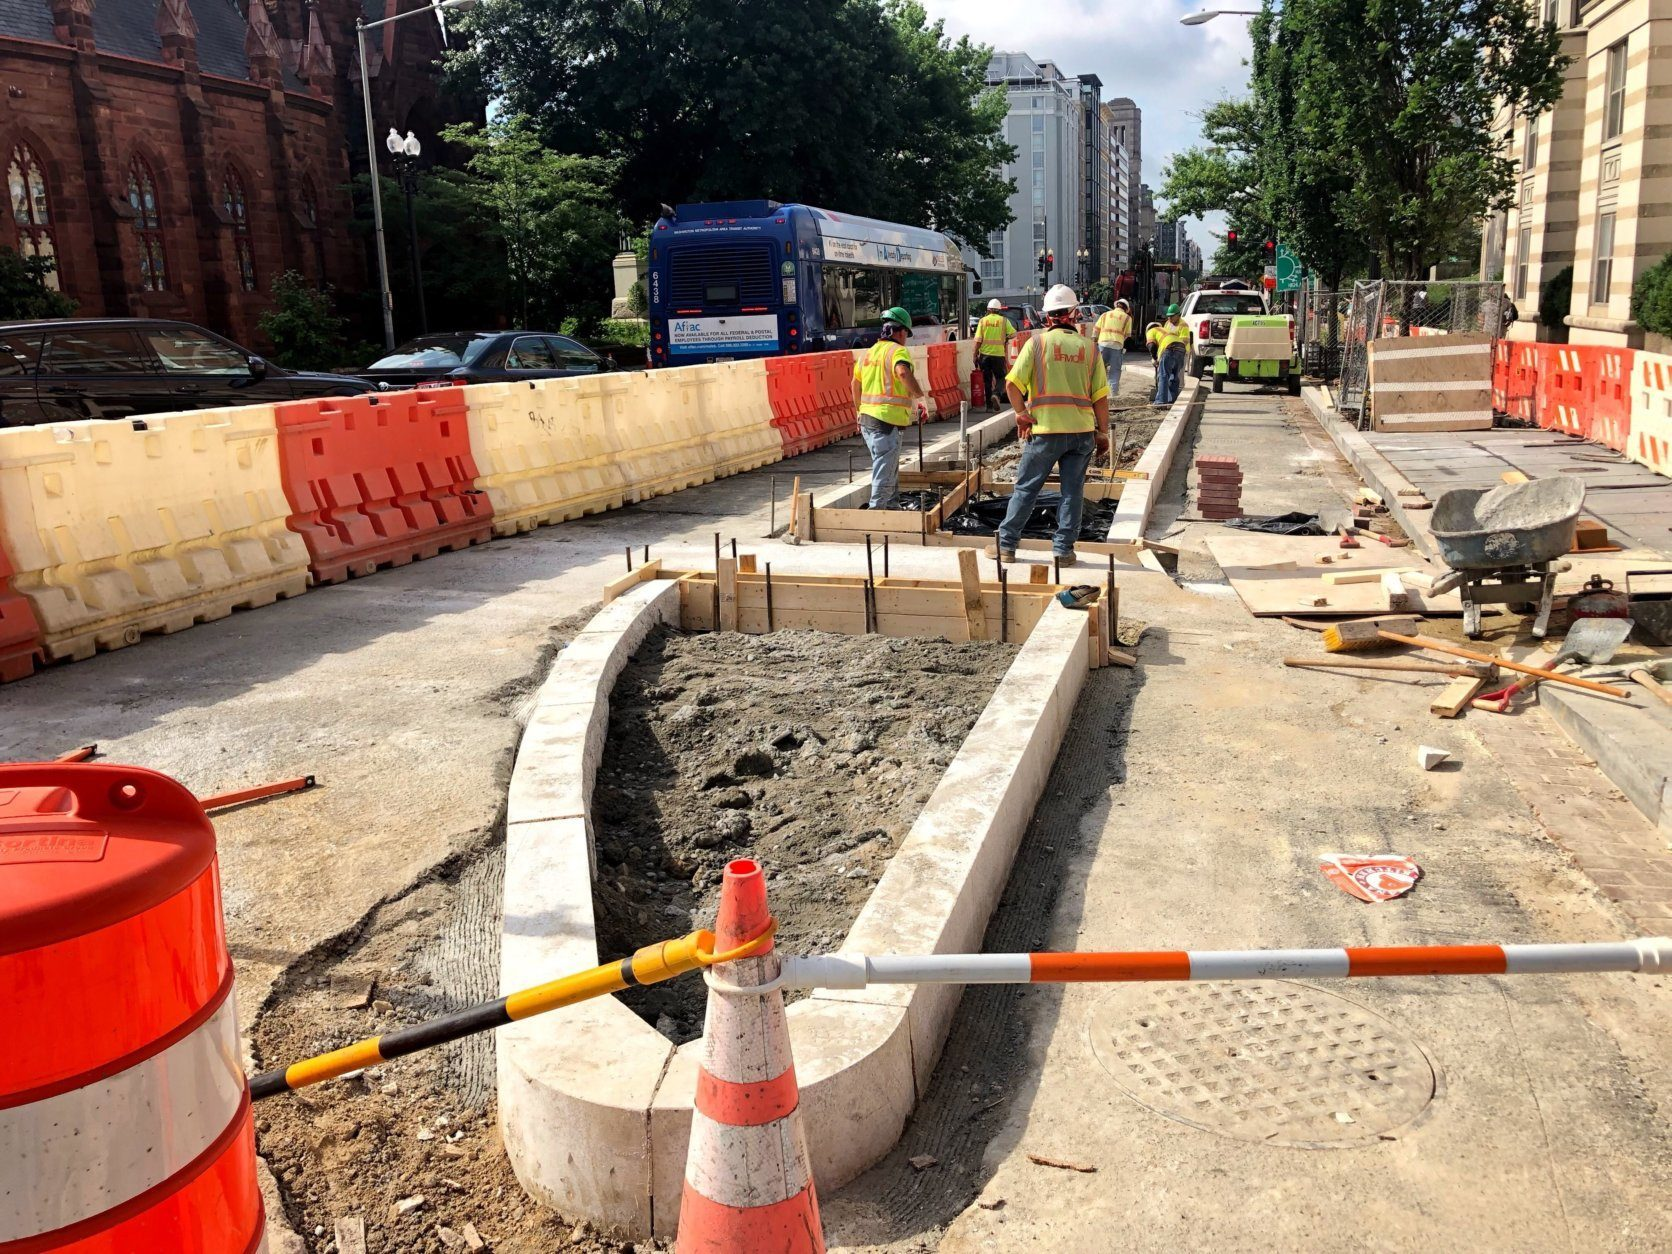 The first bus island in the 14th St. NW Streetscape project is being created at the intersection with N St. (WTOP/Neal Augenstein)